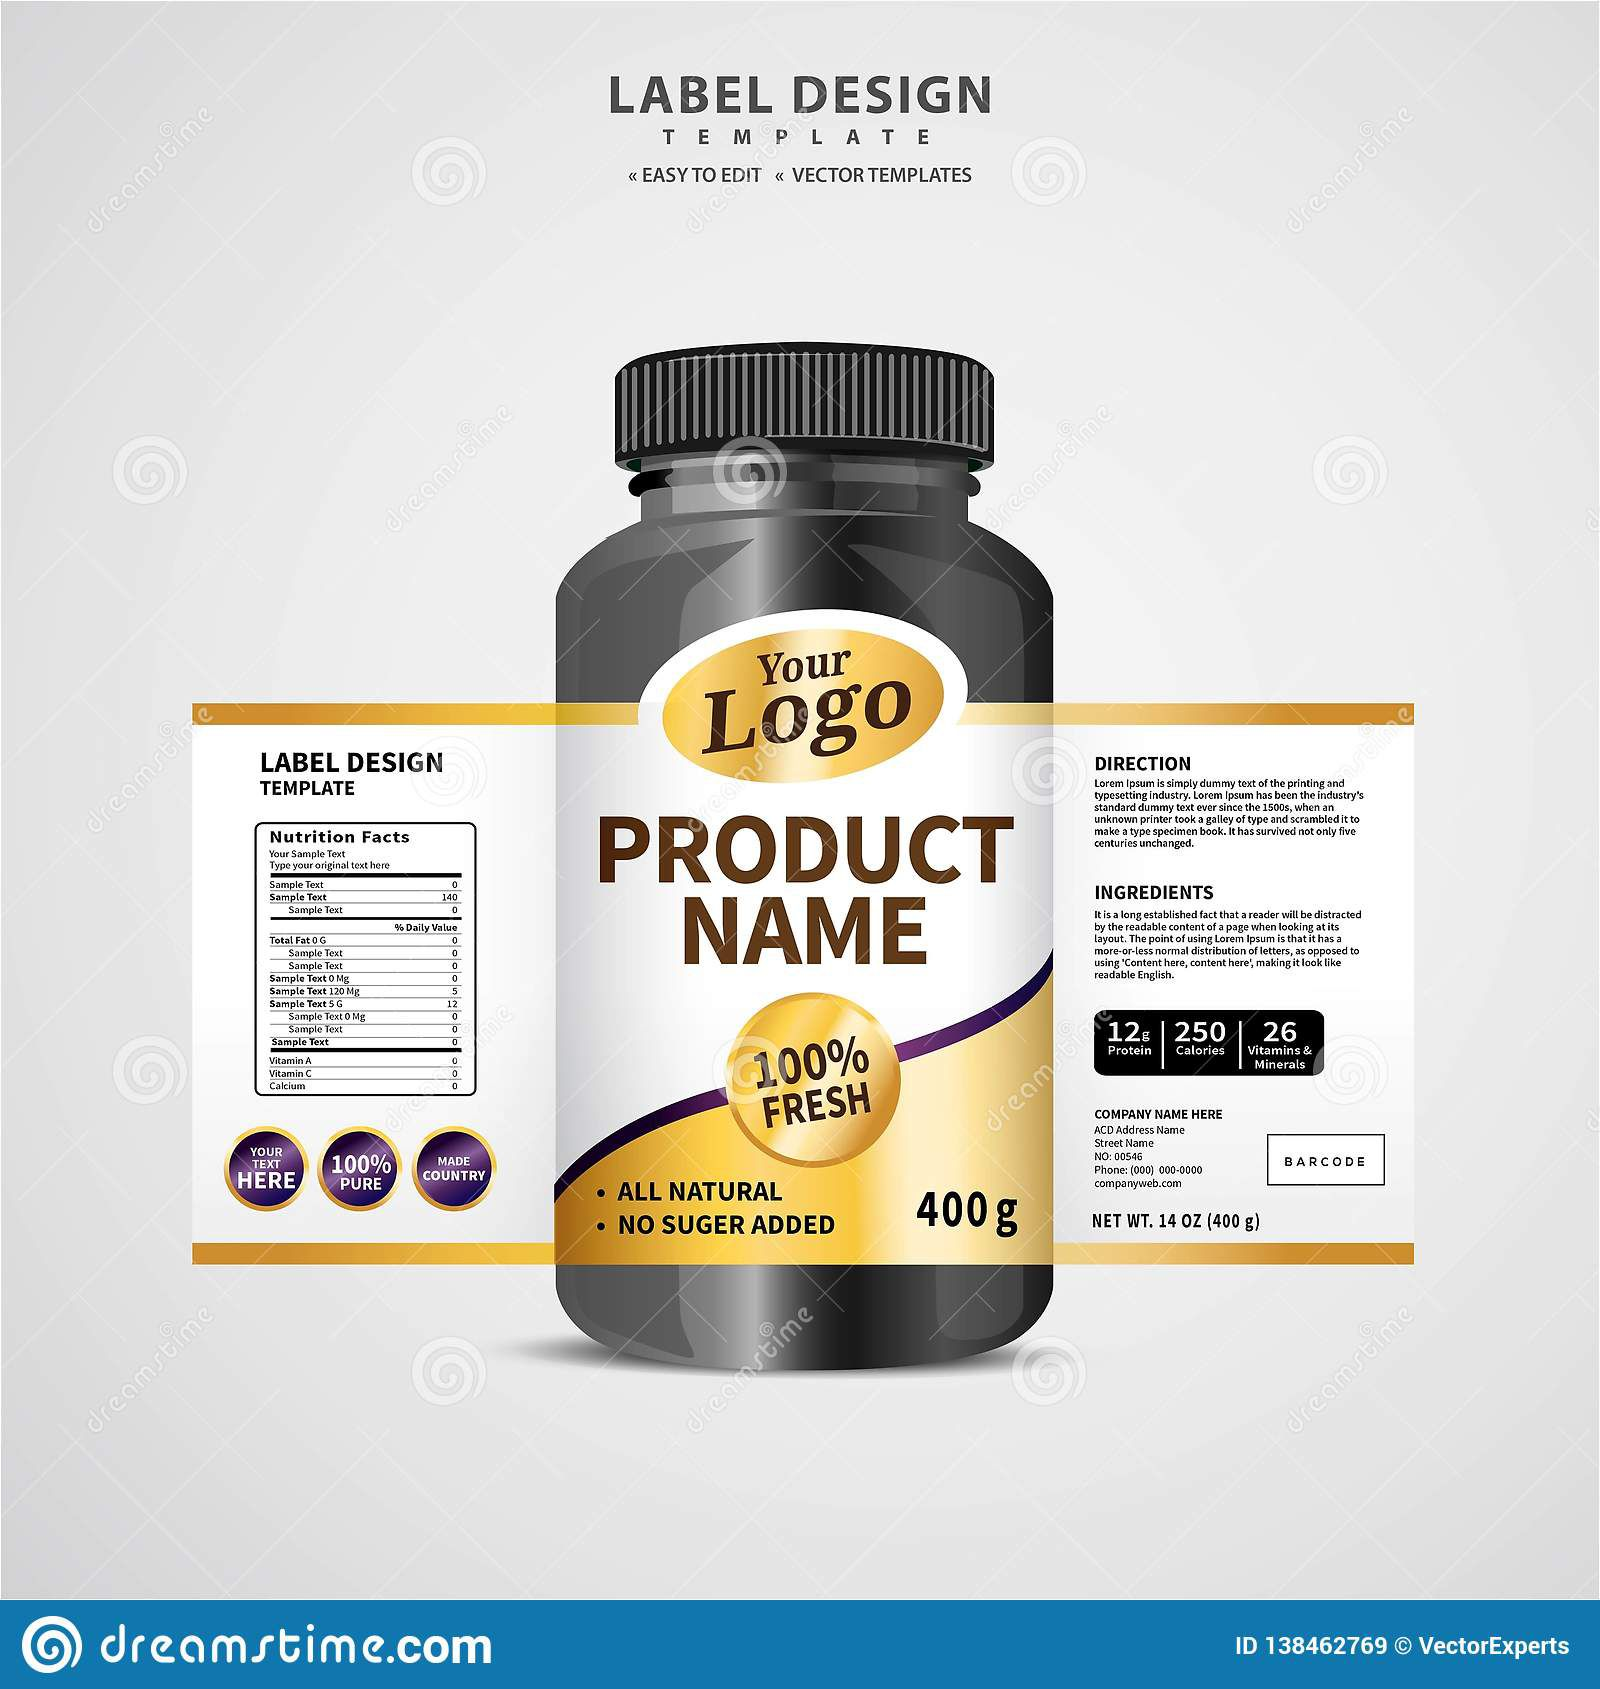 005 Surprising Free Addres Label Design Template Image  Templates For Word ShippingFull